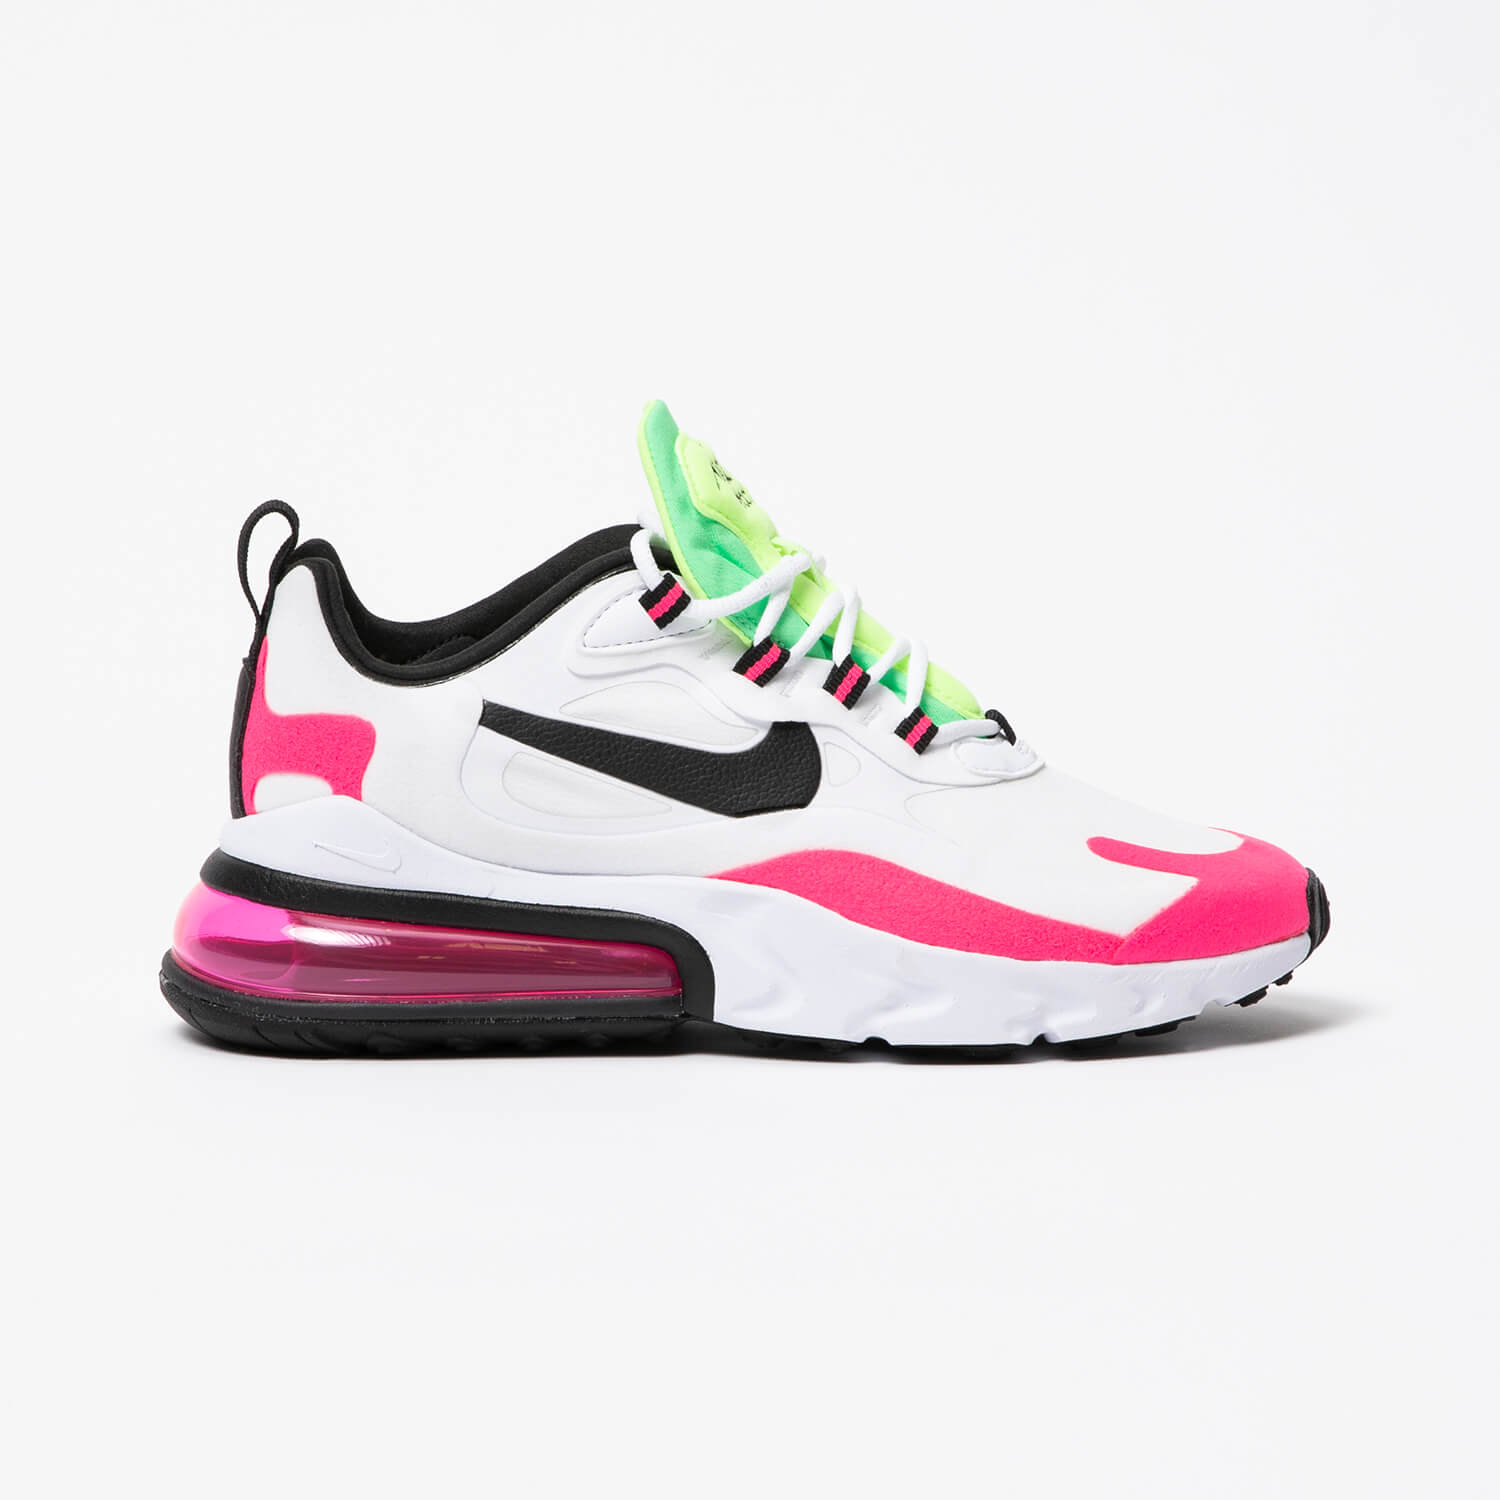 air max 270 white and black womens